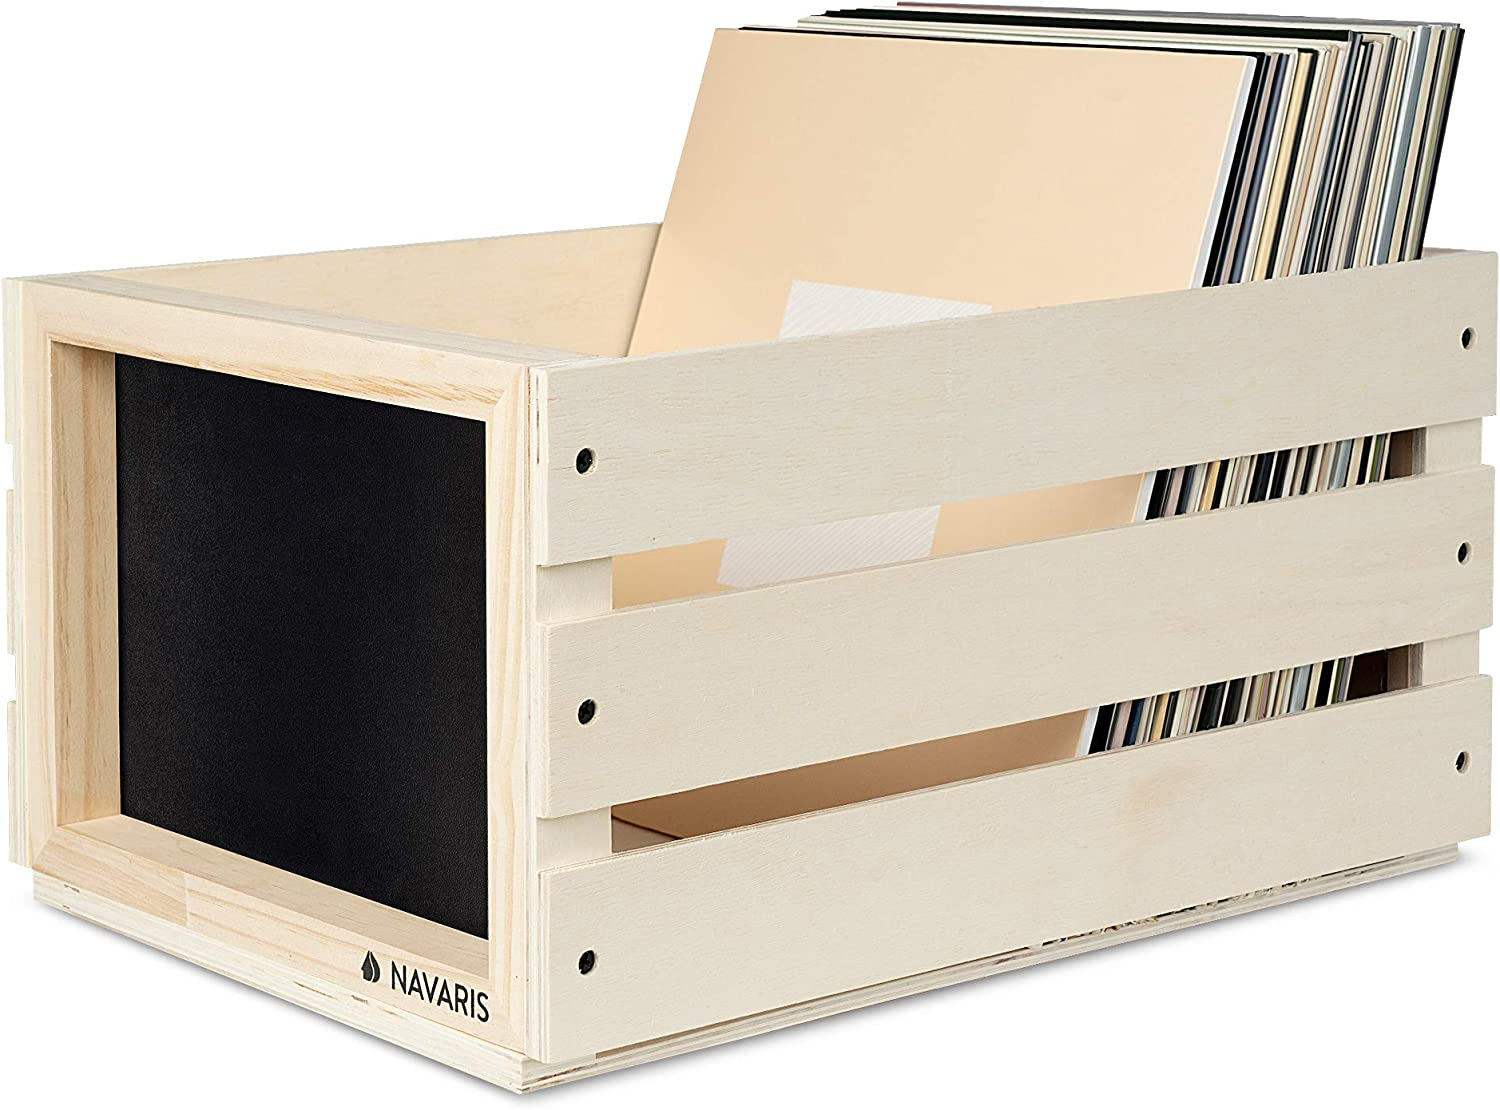 Navaris Wood Record Crate Vinyl Album Storage Holder Box Wooden Case with Chalkboard Sign Board White Holds up to 80 LP Records